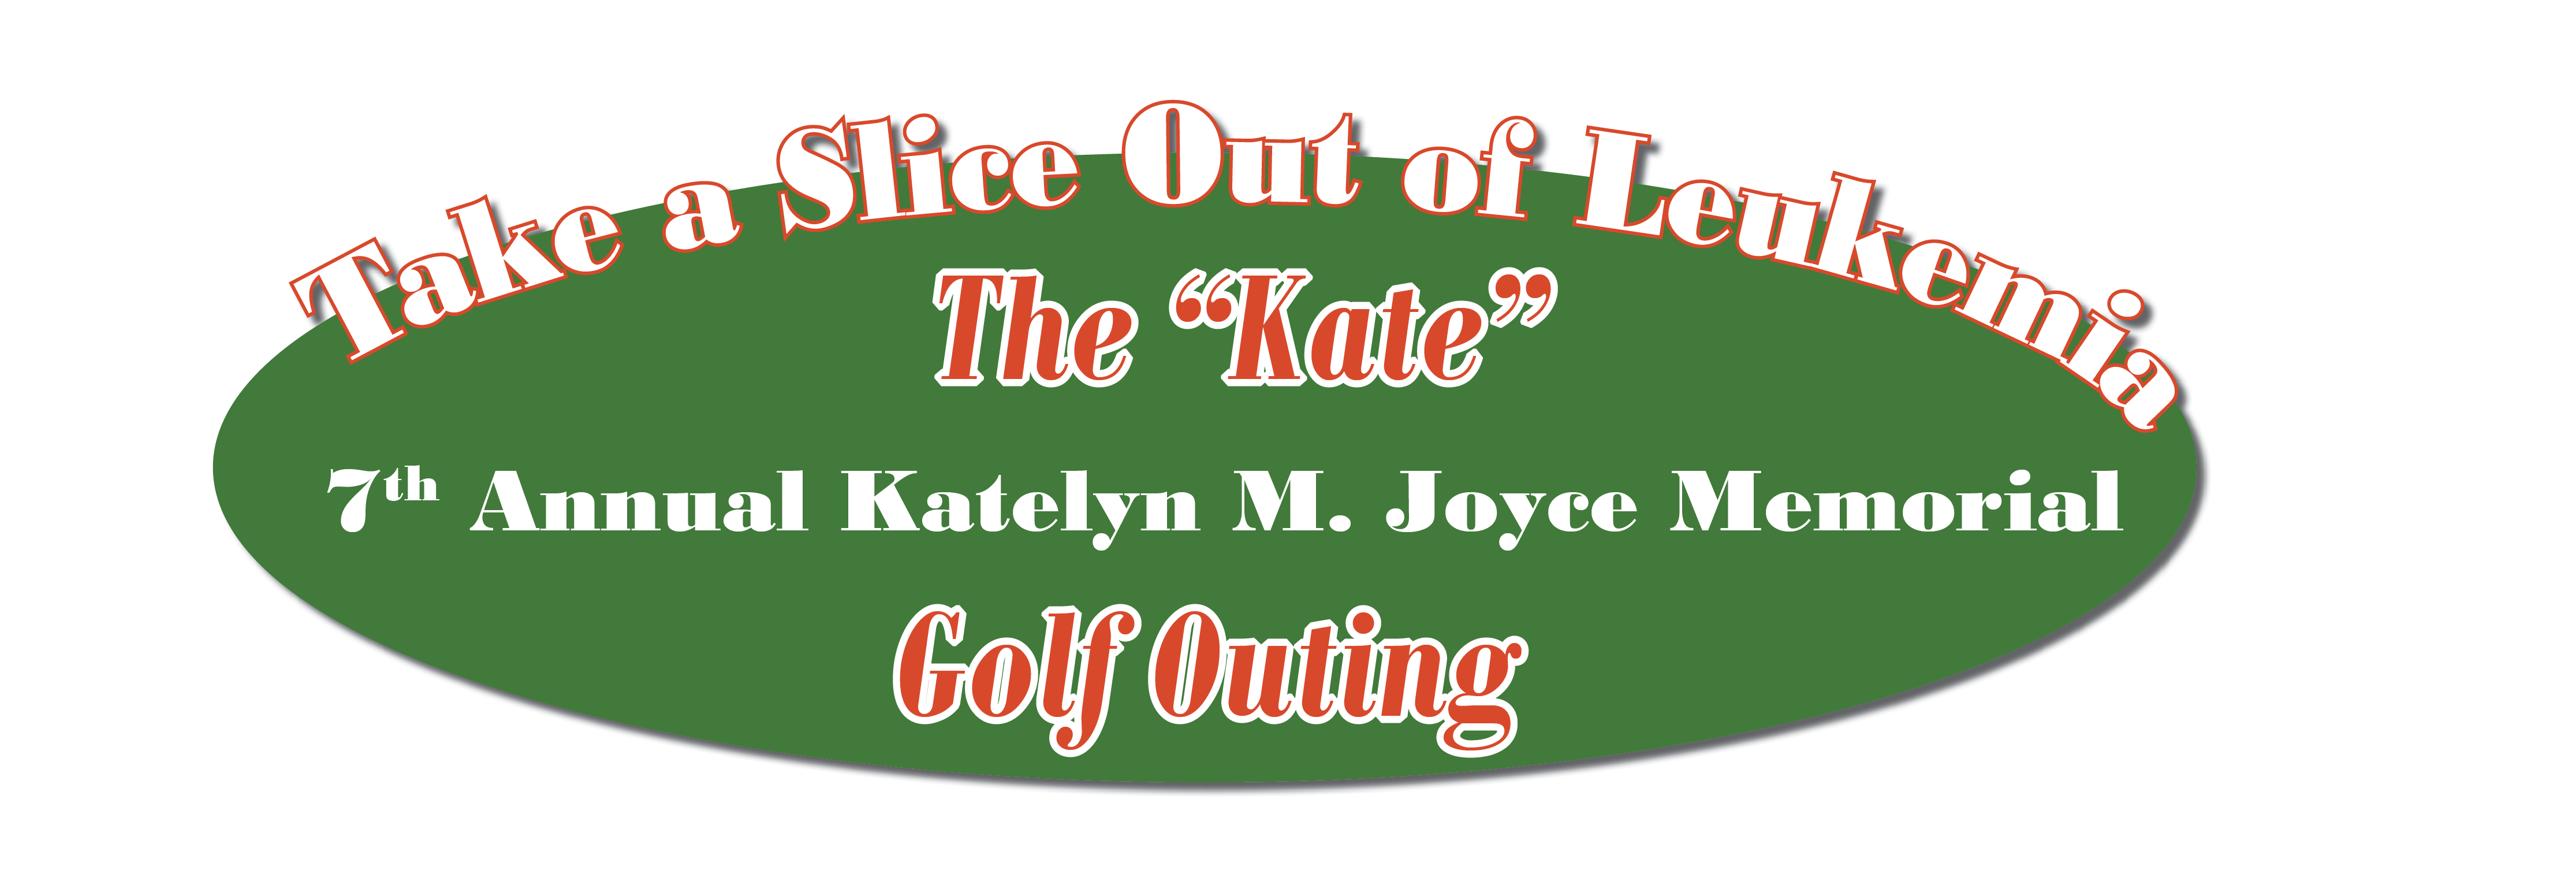 Friends of Katelyn